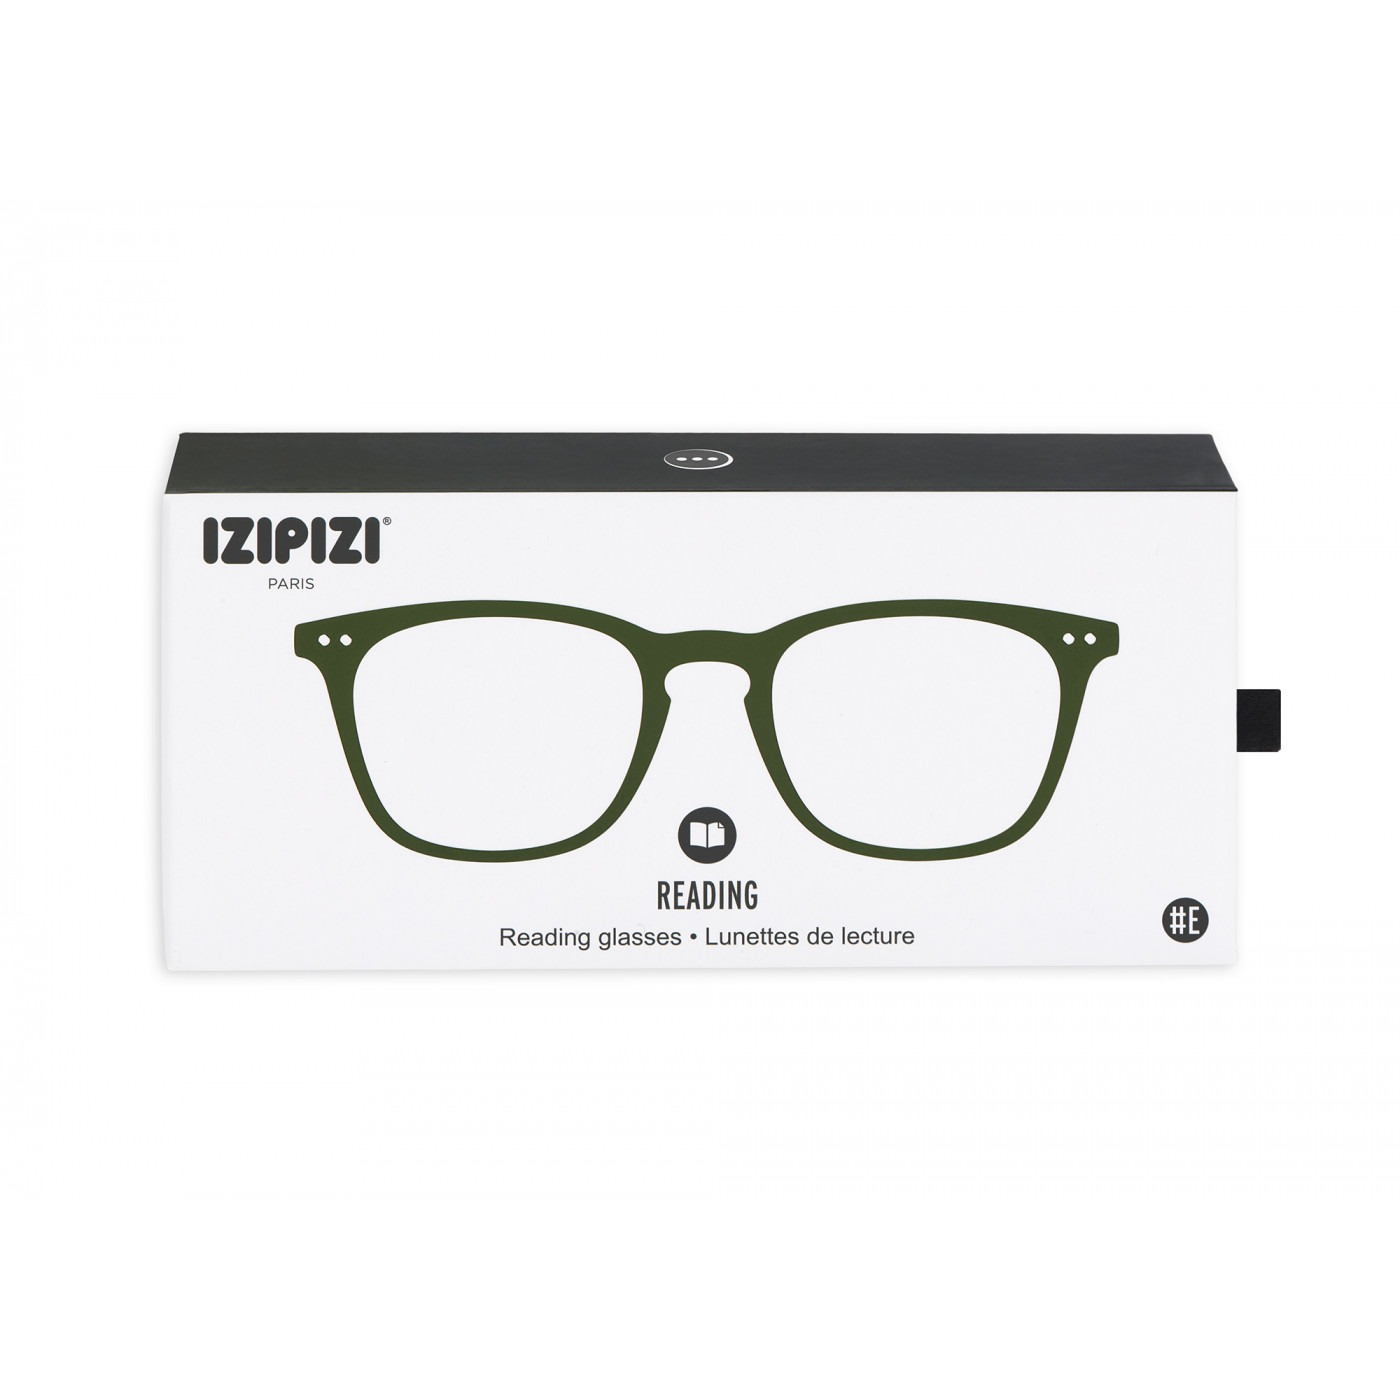 Izipizi #E Reading Glasses (Spectacles) in Green Crystal